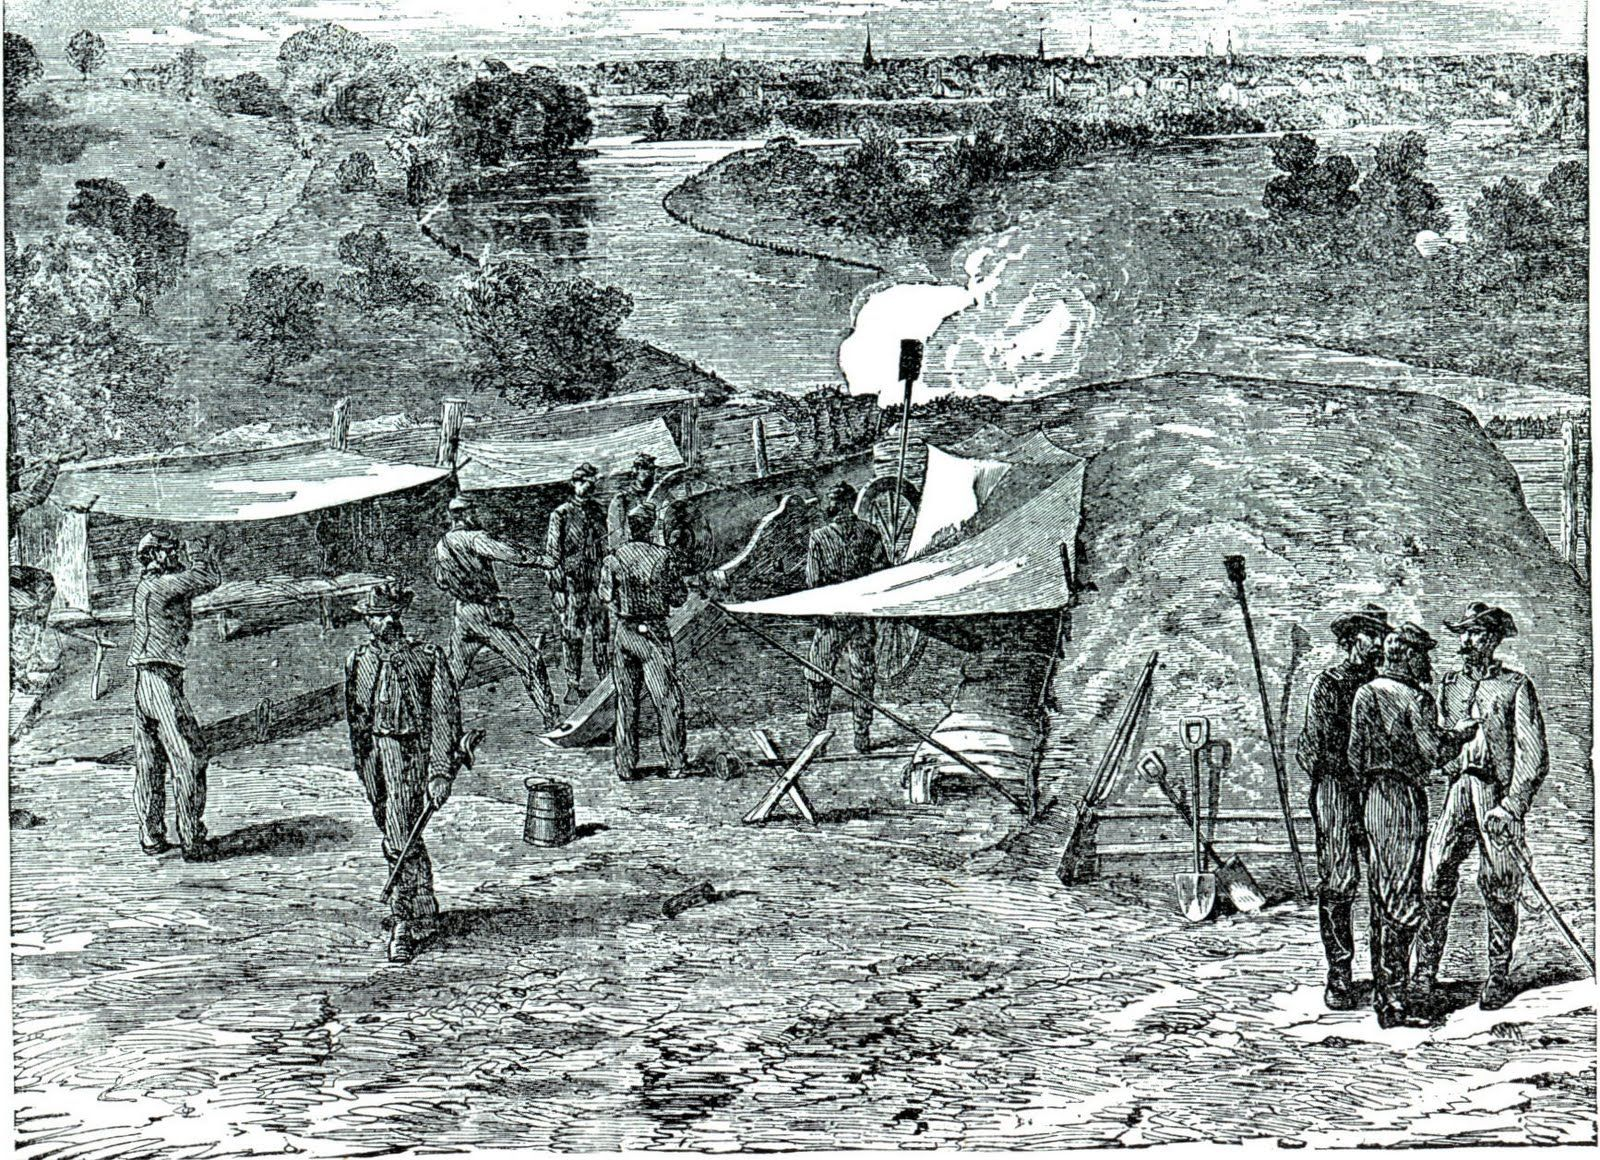 siege of petersburg images | 1865 during the battle of petersburg when he was shot and captured